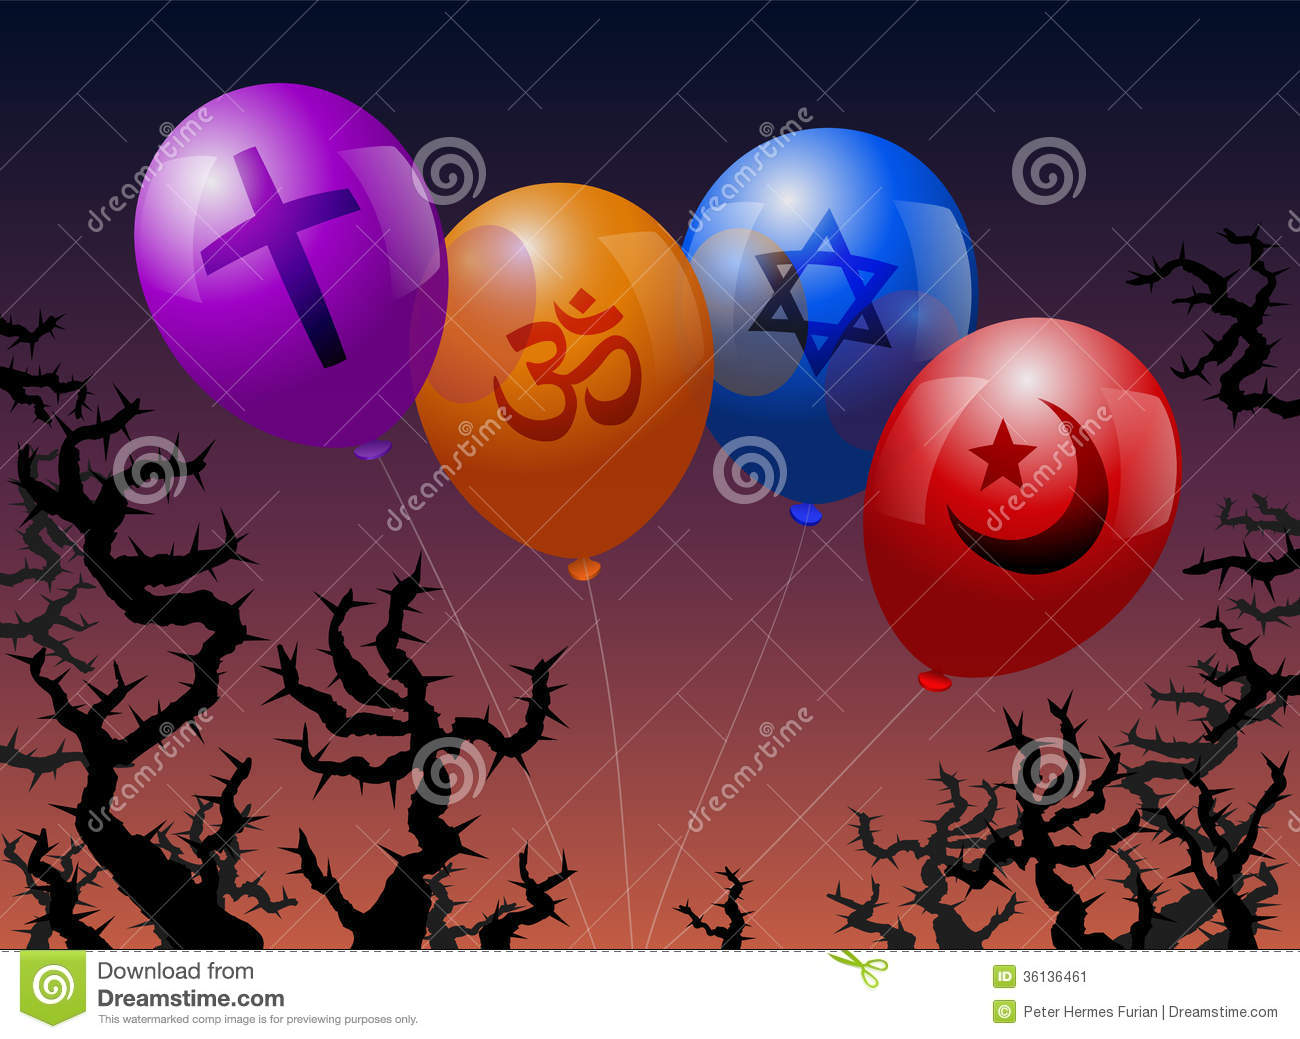 christianity and hinduism Hinduism and christianity represent two of the oldest religions of the east and the  west while superficially they do seem to be very different from each others,.